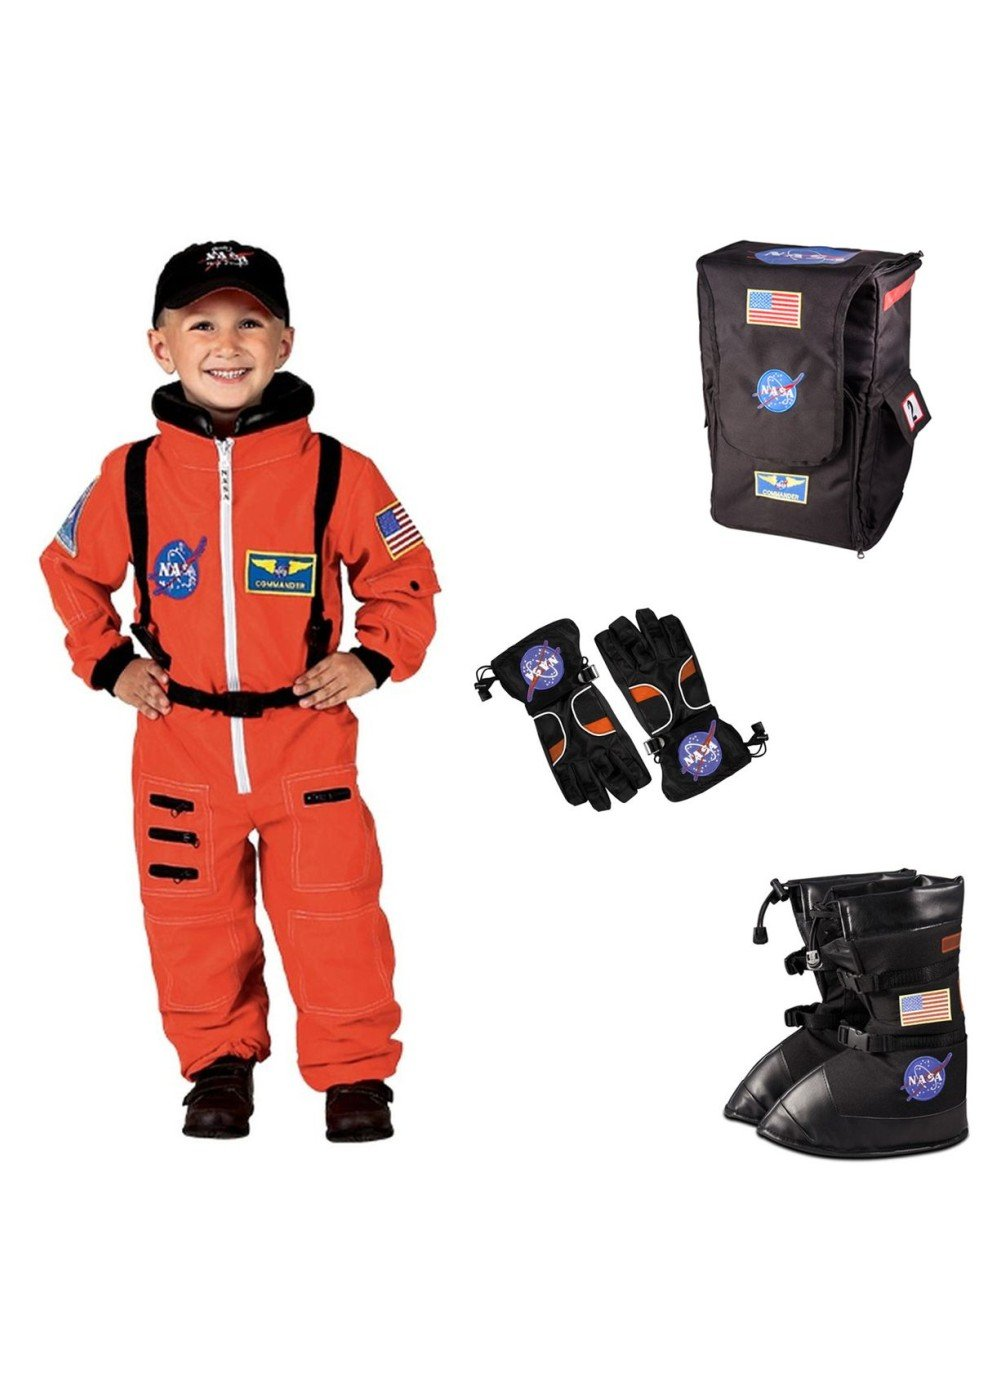 Little Boys' Nasa Orange Astronaut Costume Boots Gloves and Backpack Gift Set